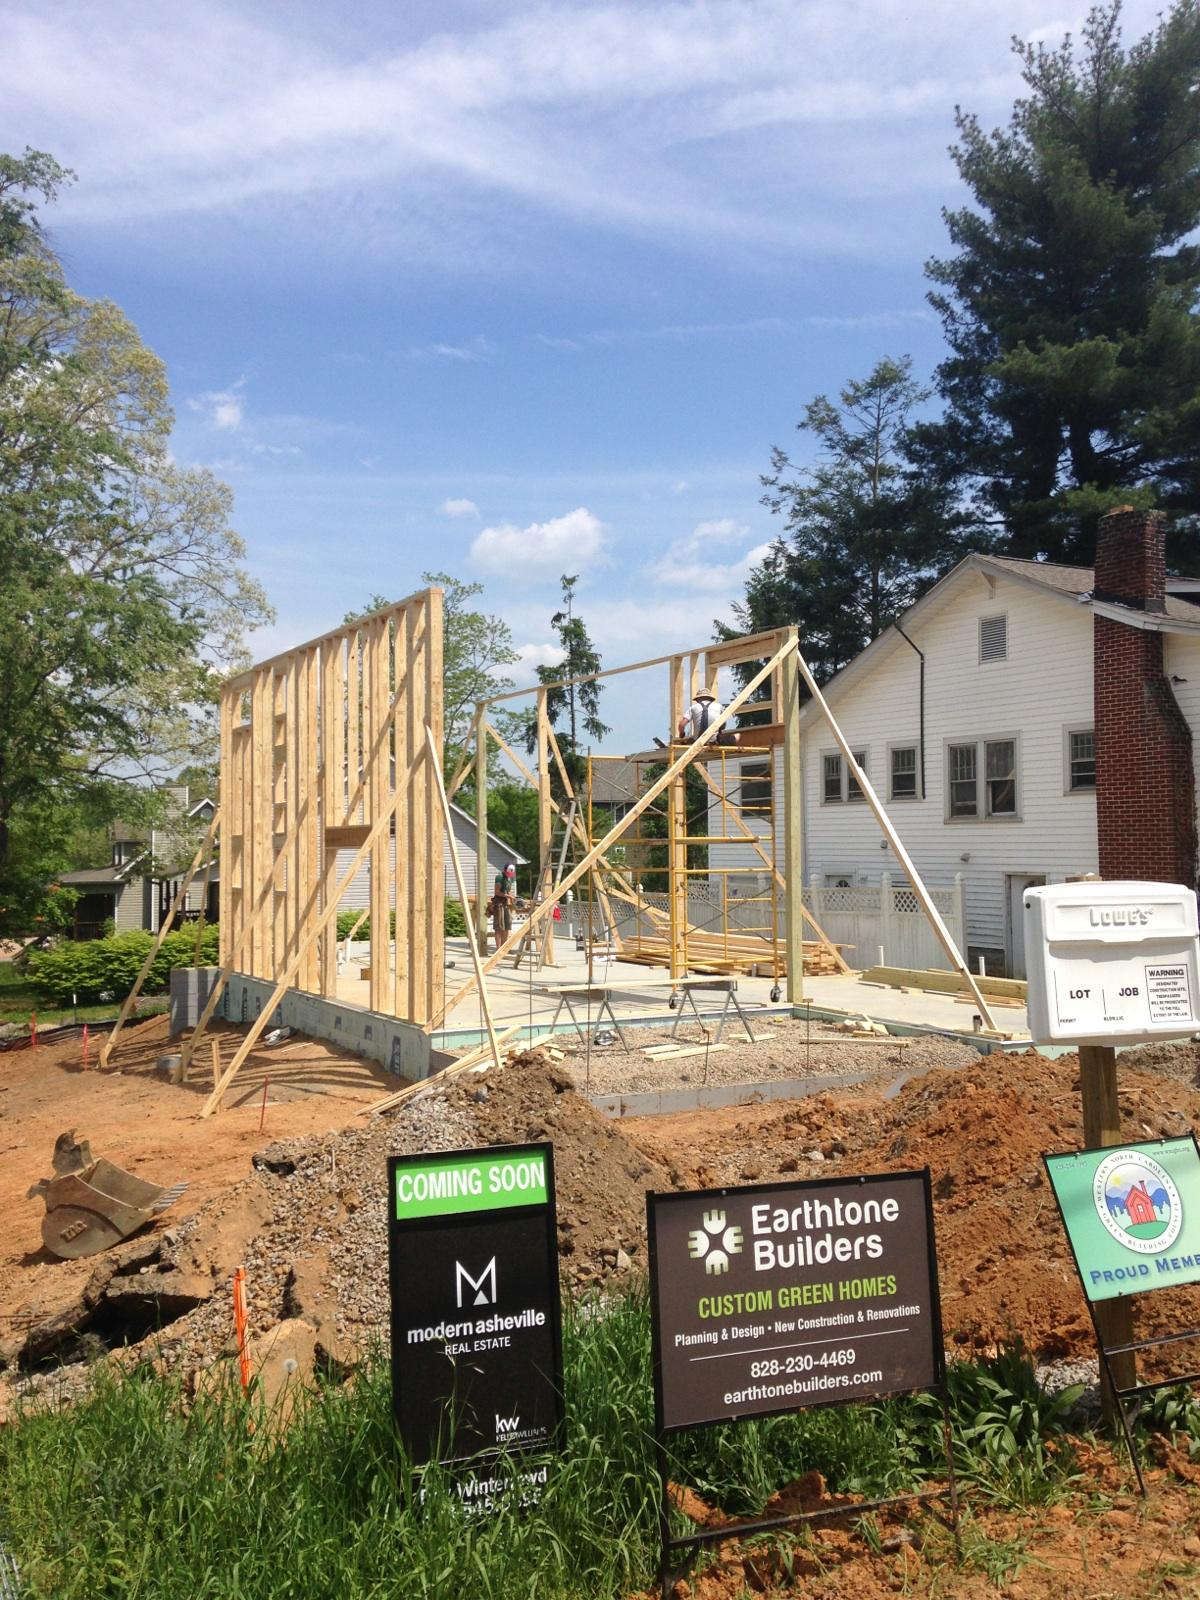 ... Topped By Finished Concrete Floors, Builder Greg McGuffey Sent Us This  Photo Of The Framing Going Up Today On His Latest Modern, Shed Style Home  Under ...